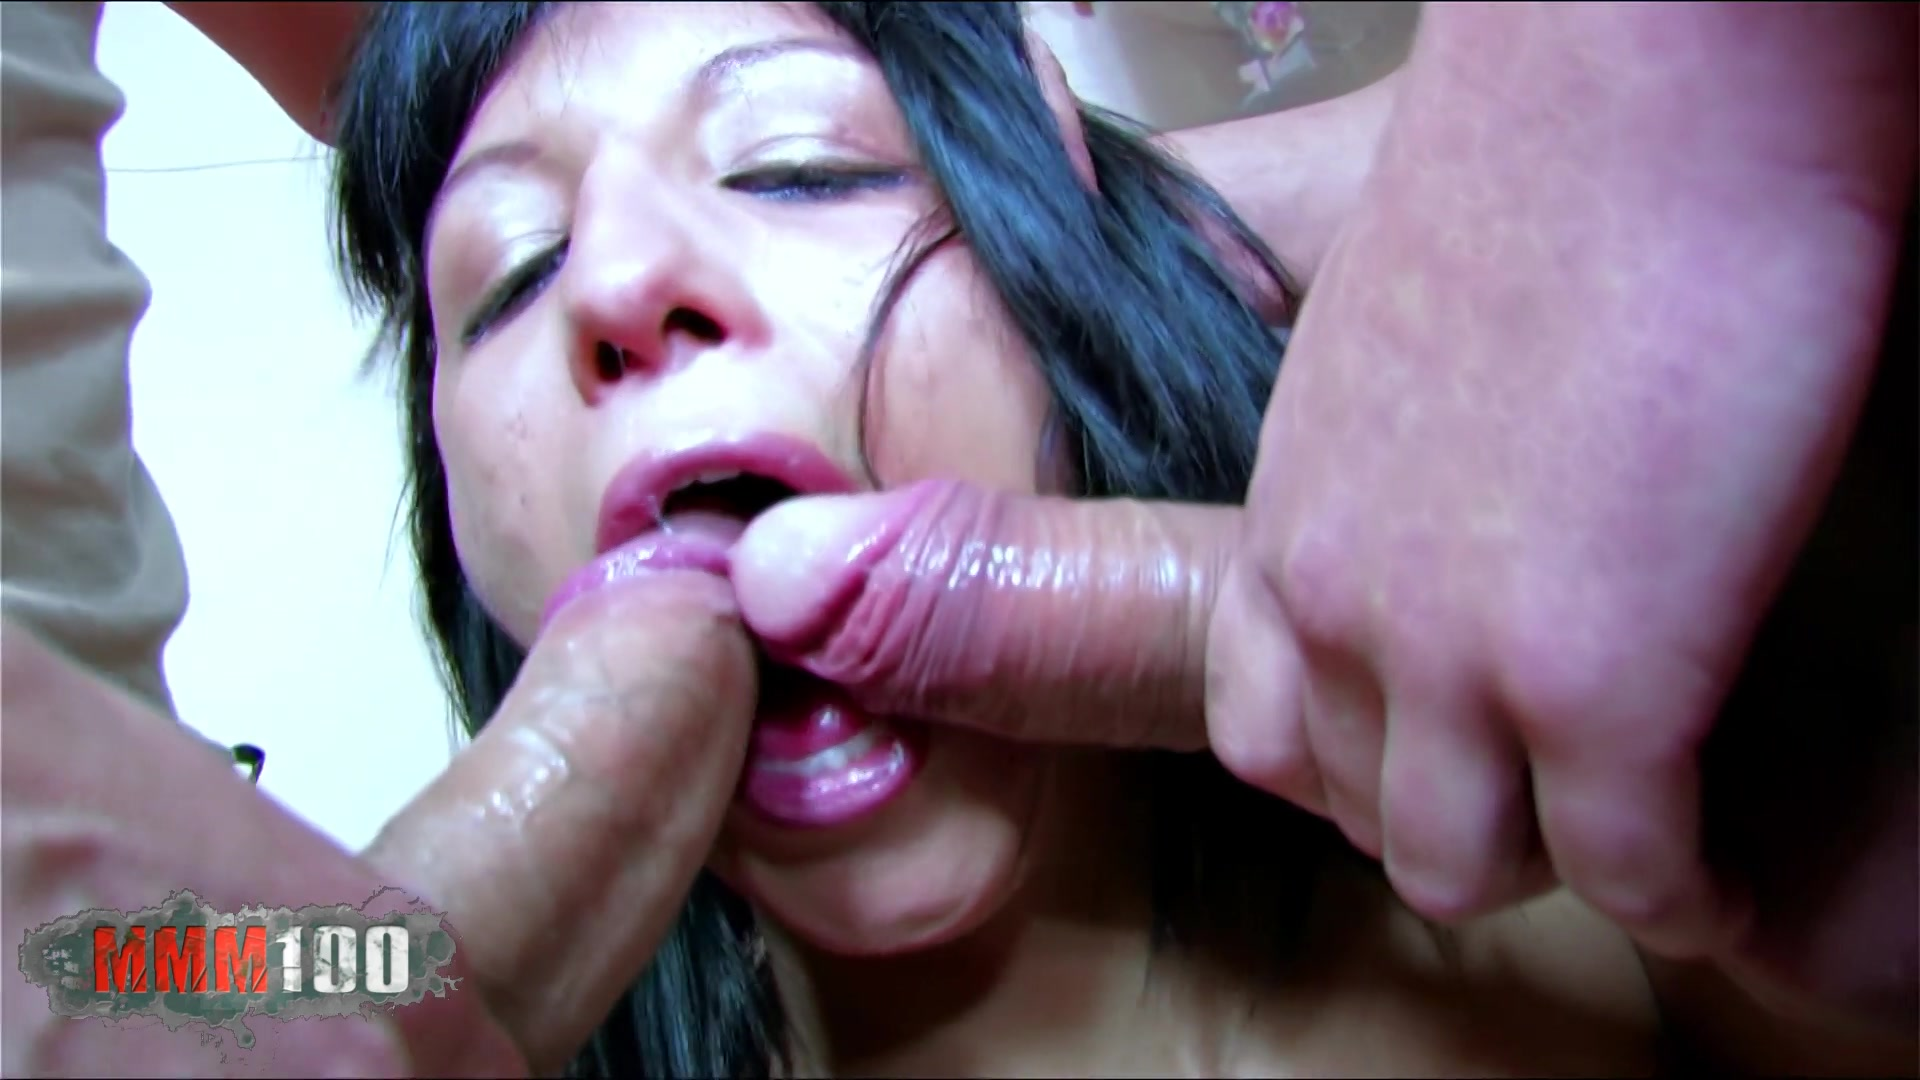 Anal Fayna Vergara fayna vergara gallery : orgy and double dp for 2 babes